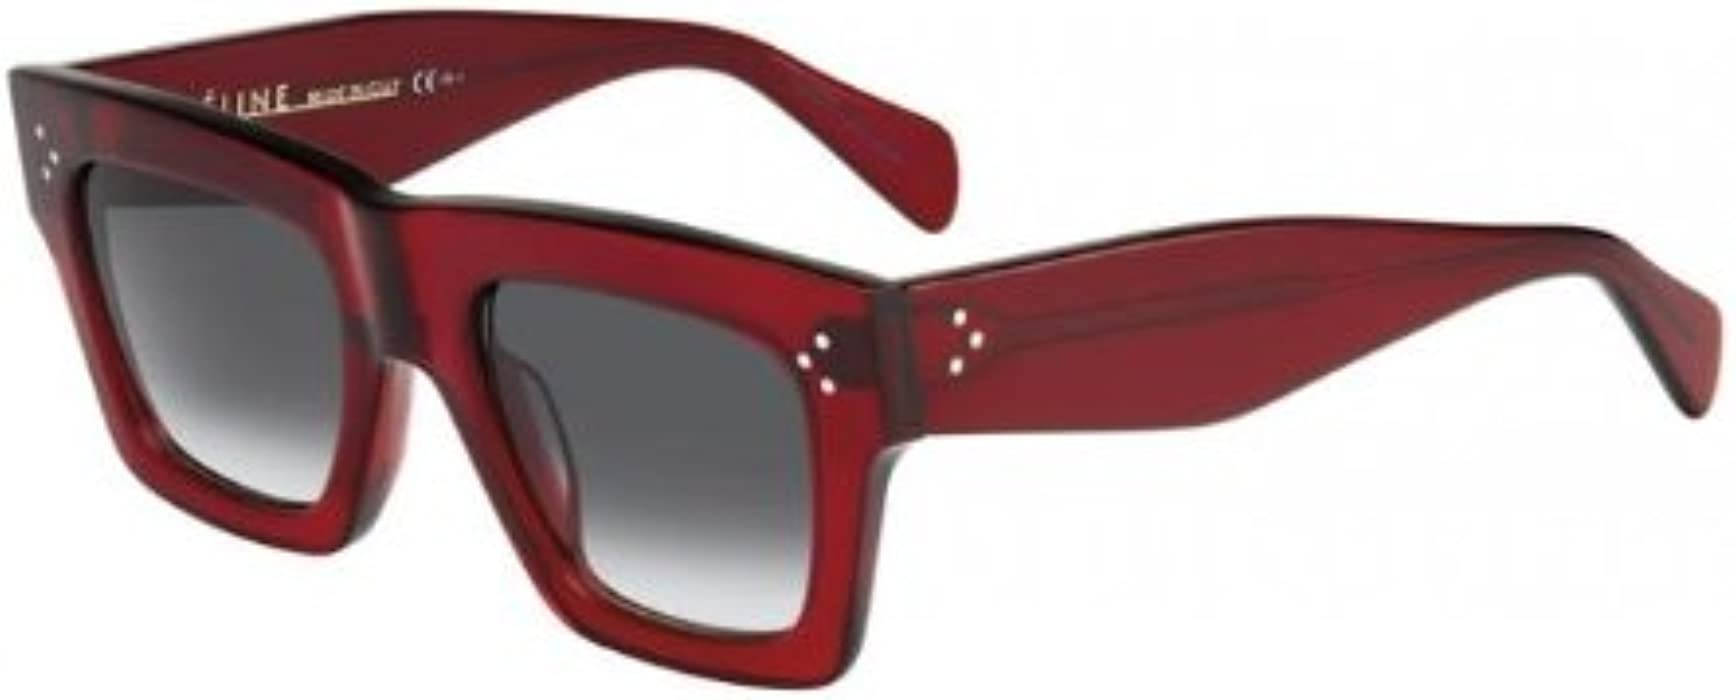 Gafas de Sol Celine CL 41054/S TRSP RED: Amazon.es: Ropa y ...